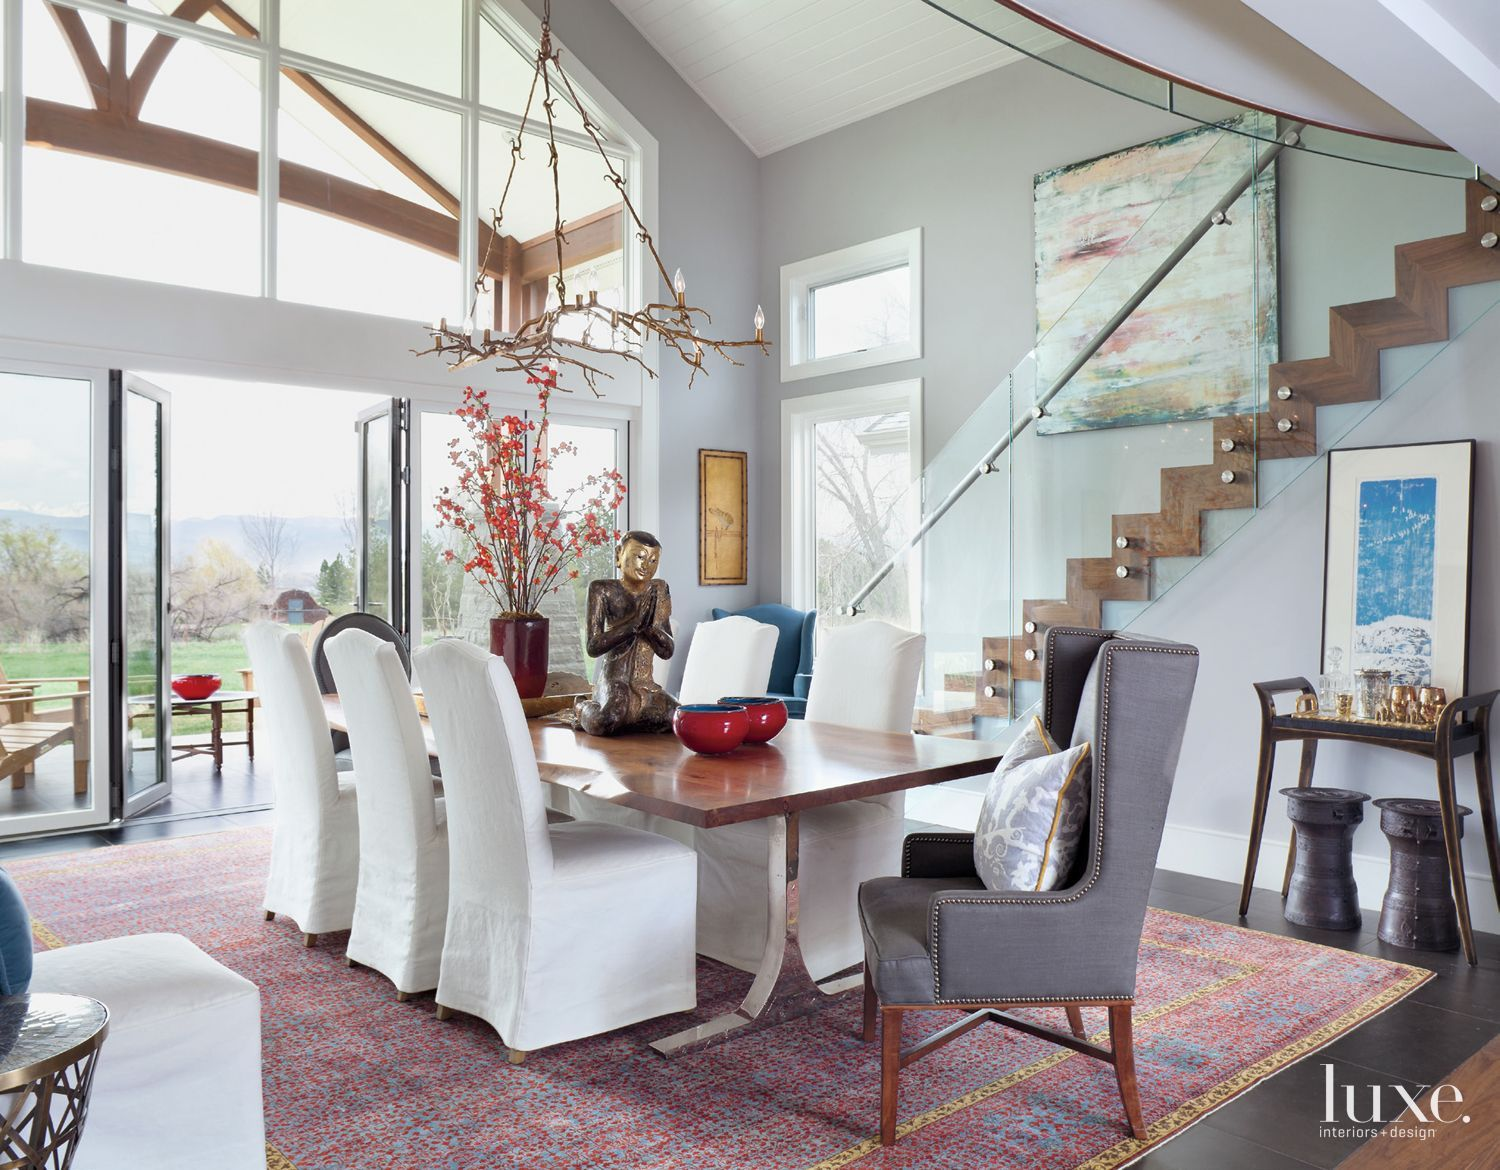 Eclectic East Boulder Home with Sprawling Mountain Views | LuxeWorthy - Design Insight from the Editors of Luxe Interiors + Design